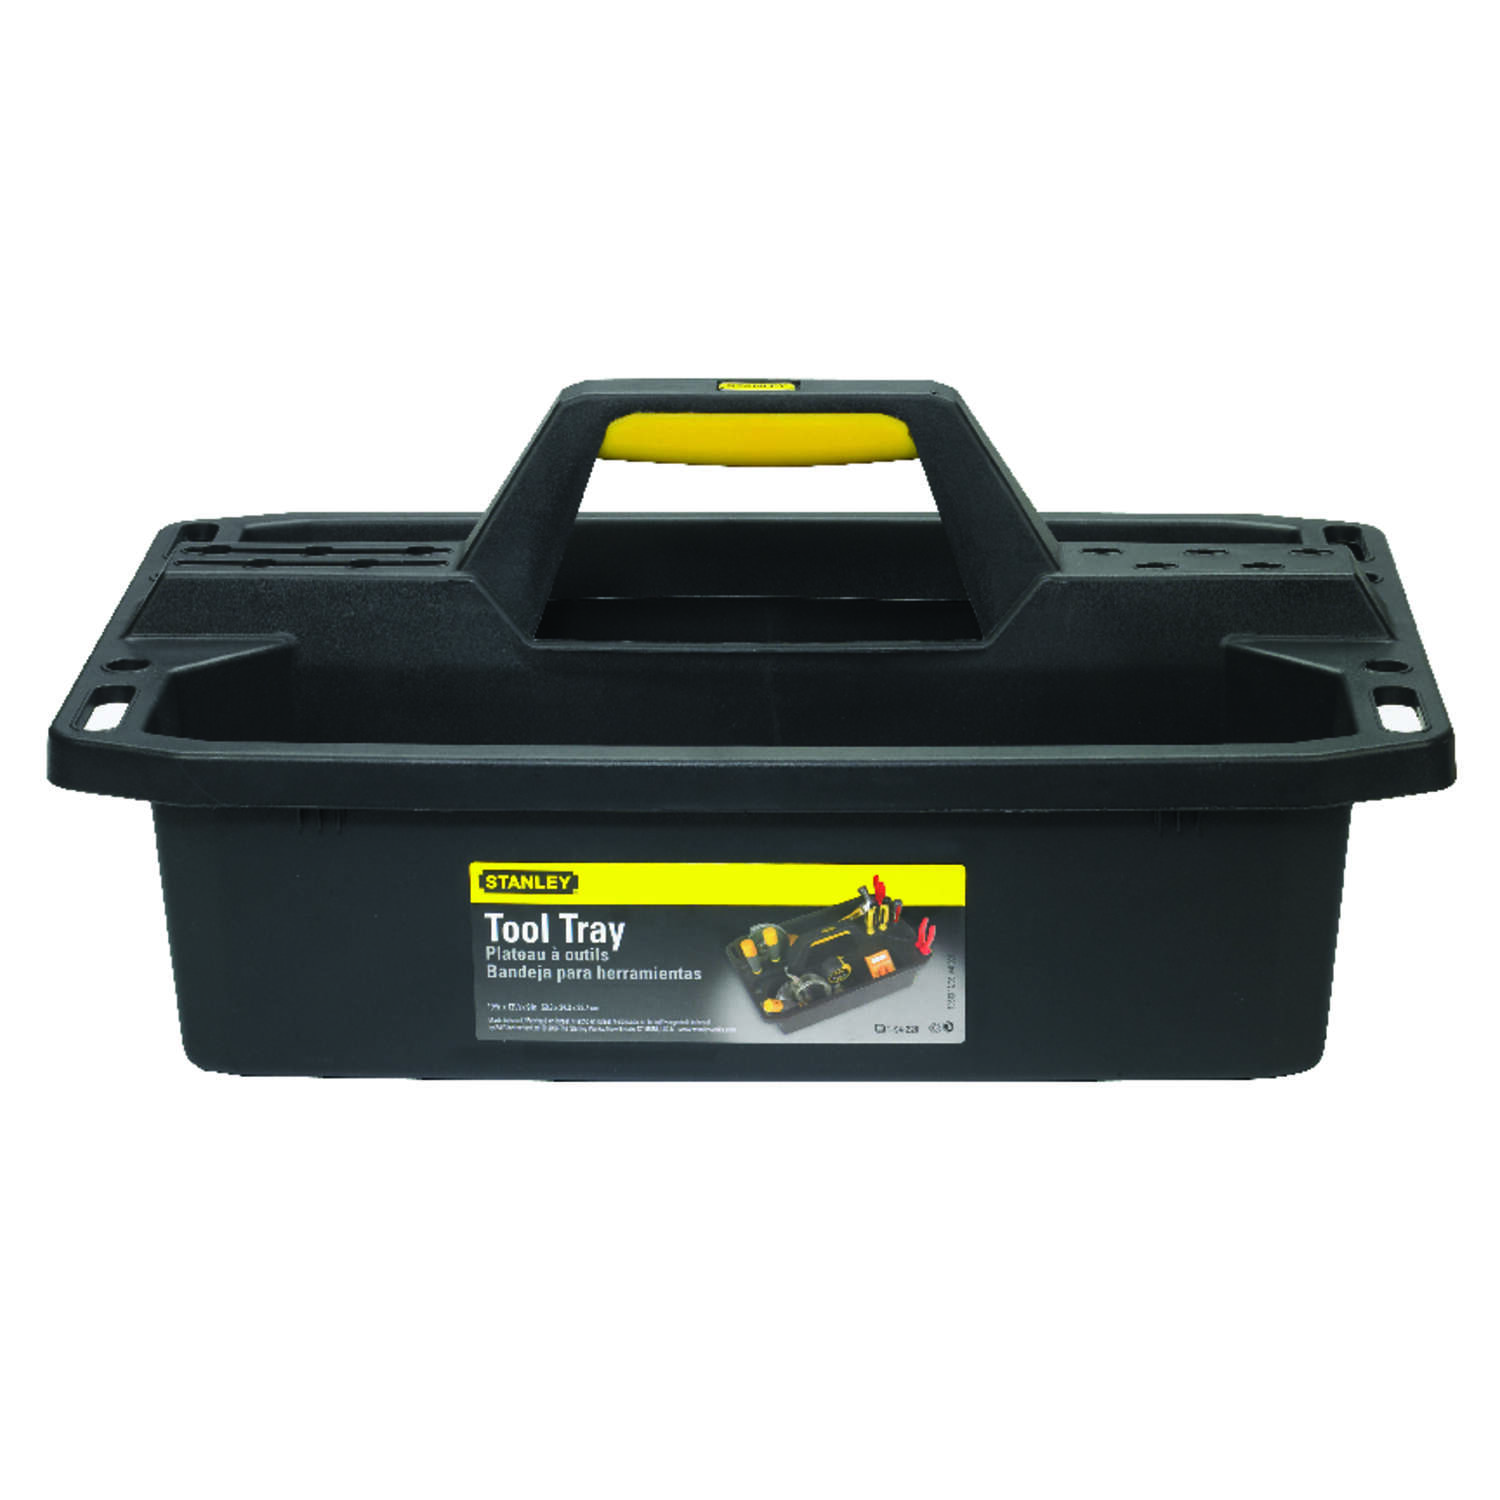 Stanley 19.5 in. Impact-Resistant Poly Tool Caddy 13 in. W x 7.7 in. H Black